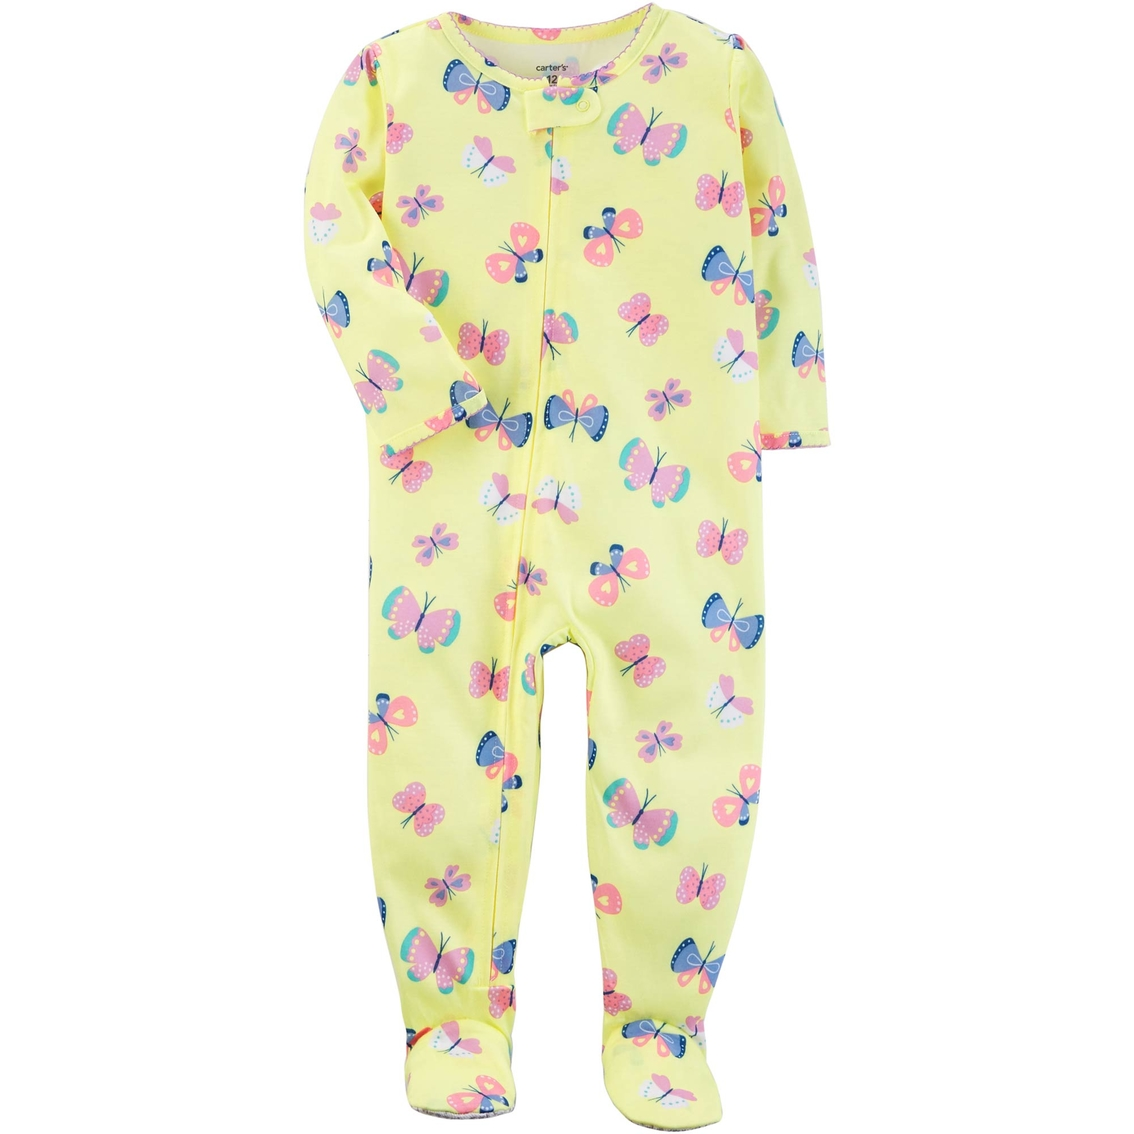 47182b49f Carter's Infant Girls Bunny 1 Pc. Footed Pajamas | Baby Girl 0-24 ...